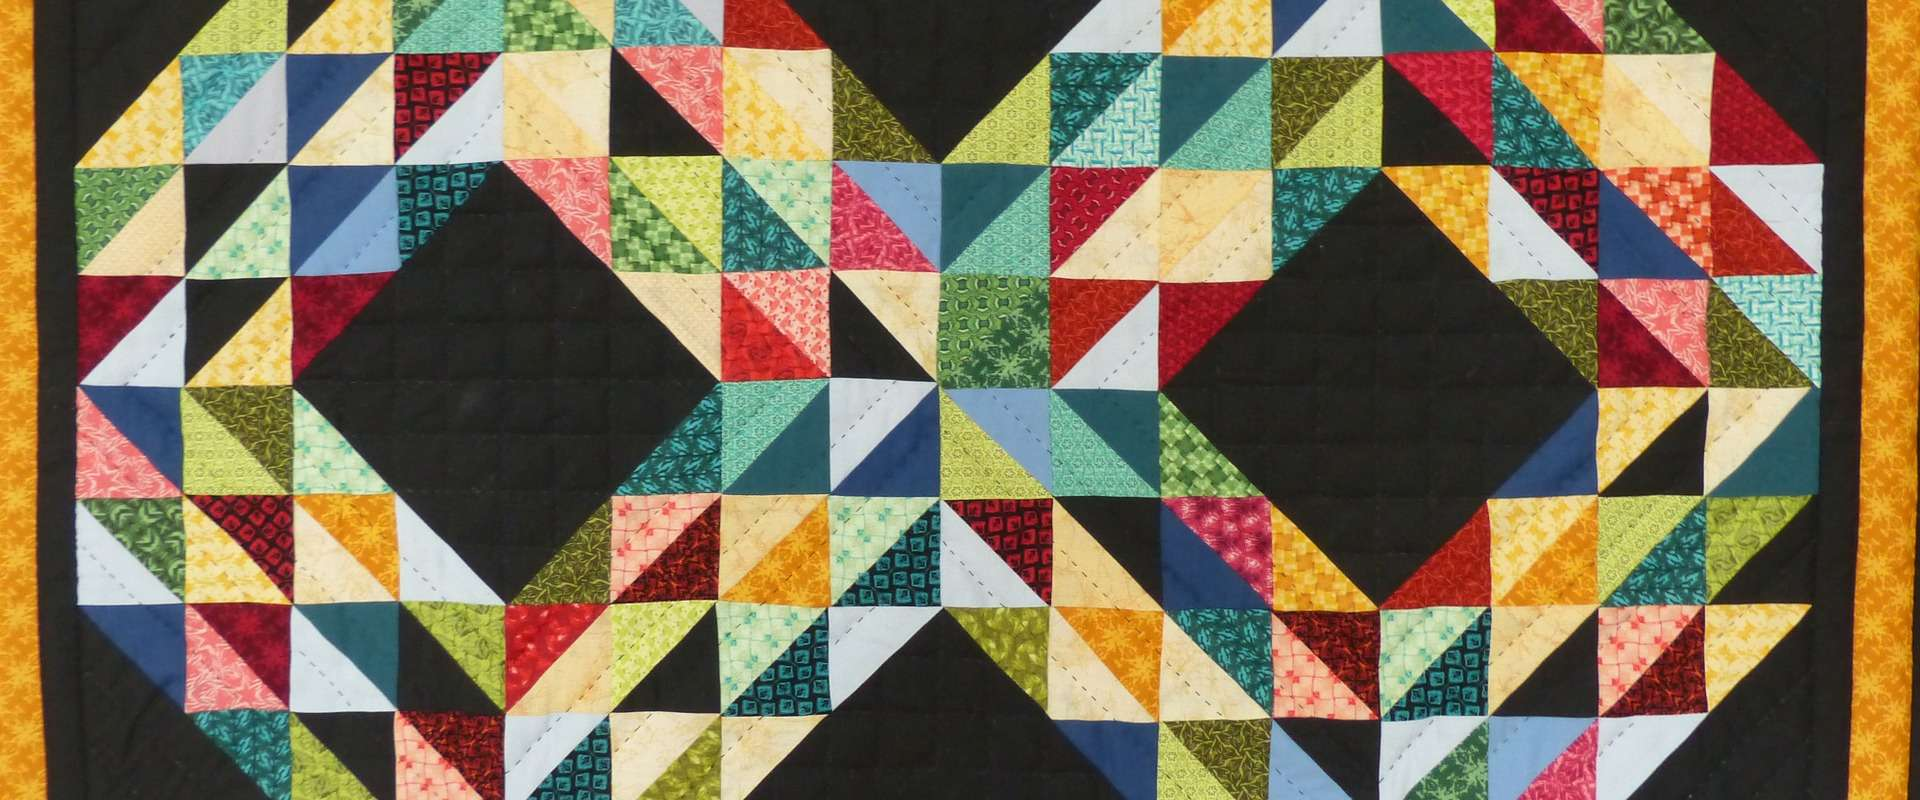 Useful patchwork templates from Sew Easy - UKQU